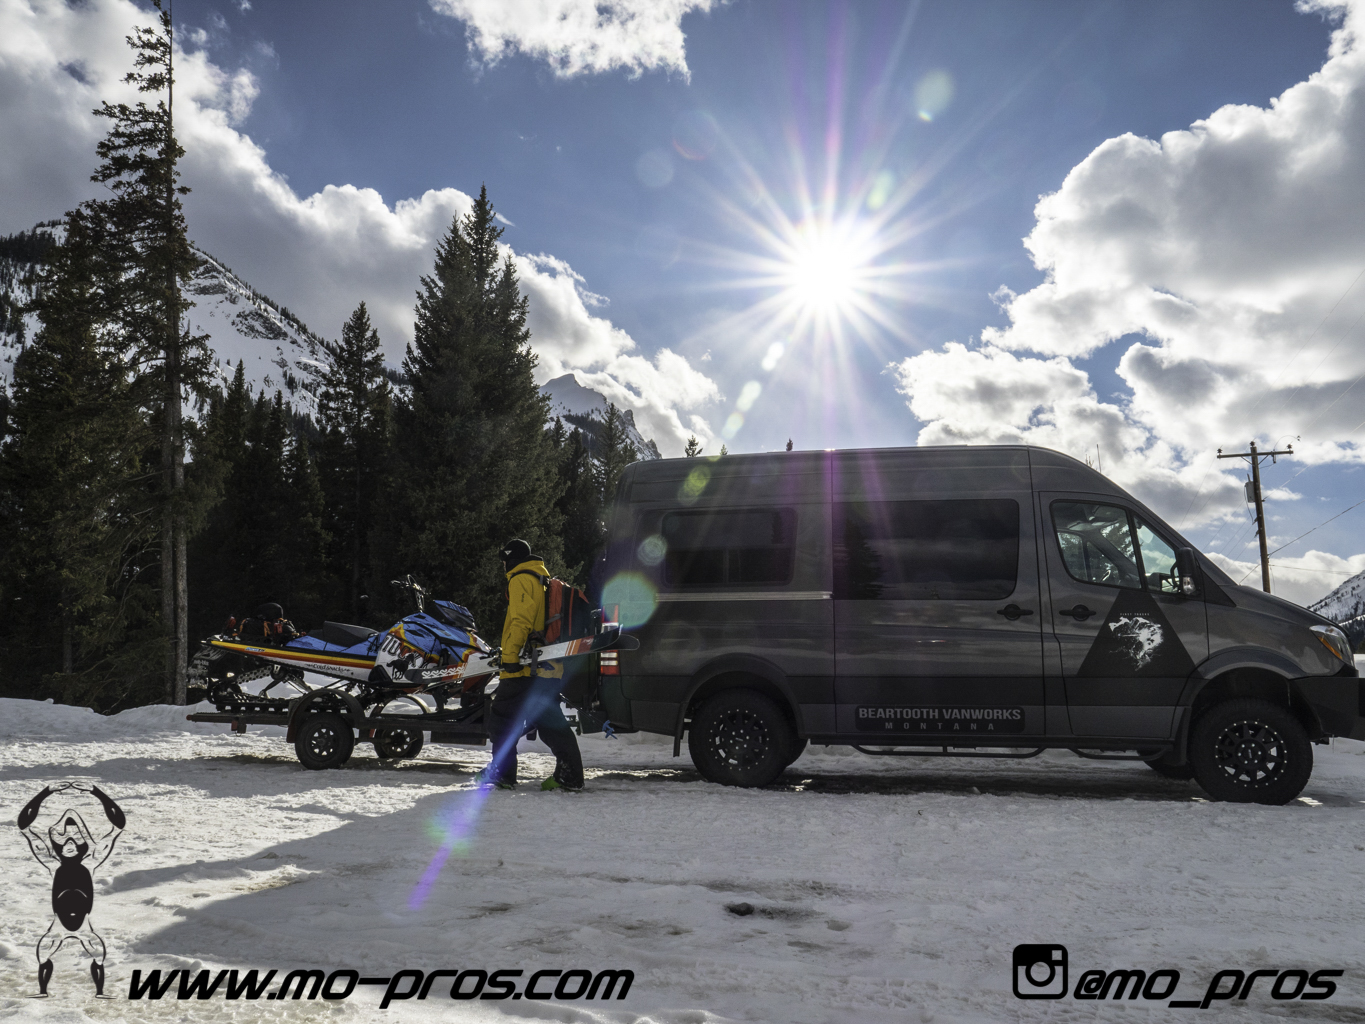 99_Snowbike_Timbersled Rack_Tsaina Rack_CFR rack_Cheetah Factory Racing_Snowboard rack_snowboard_snowmobile bag_Snowmobile_timbersled bag_gas Rack_Gear_Gun Rack_LinQ Snowboard Ski_Ski_Snowboarding_Ti.jpg